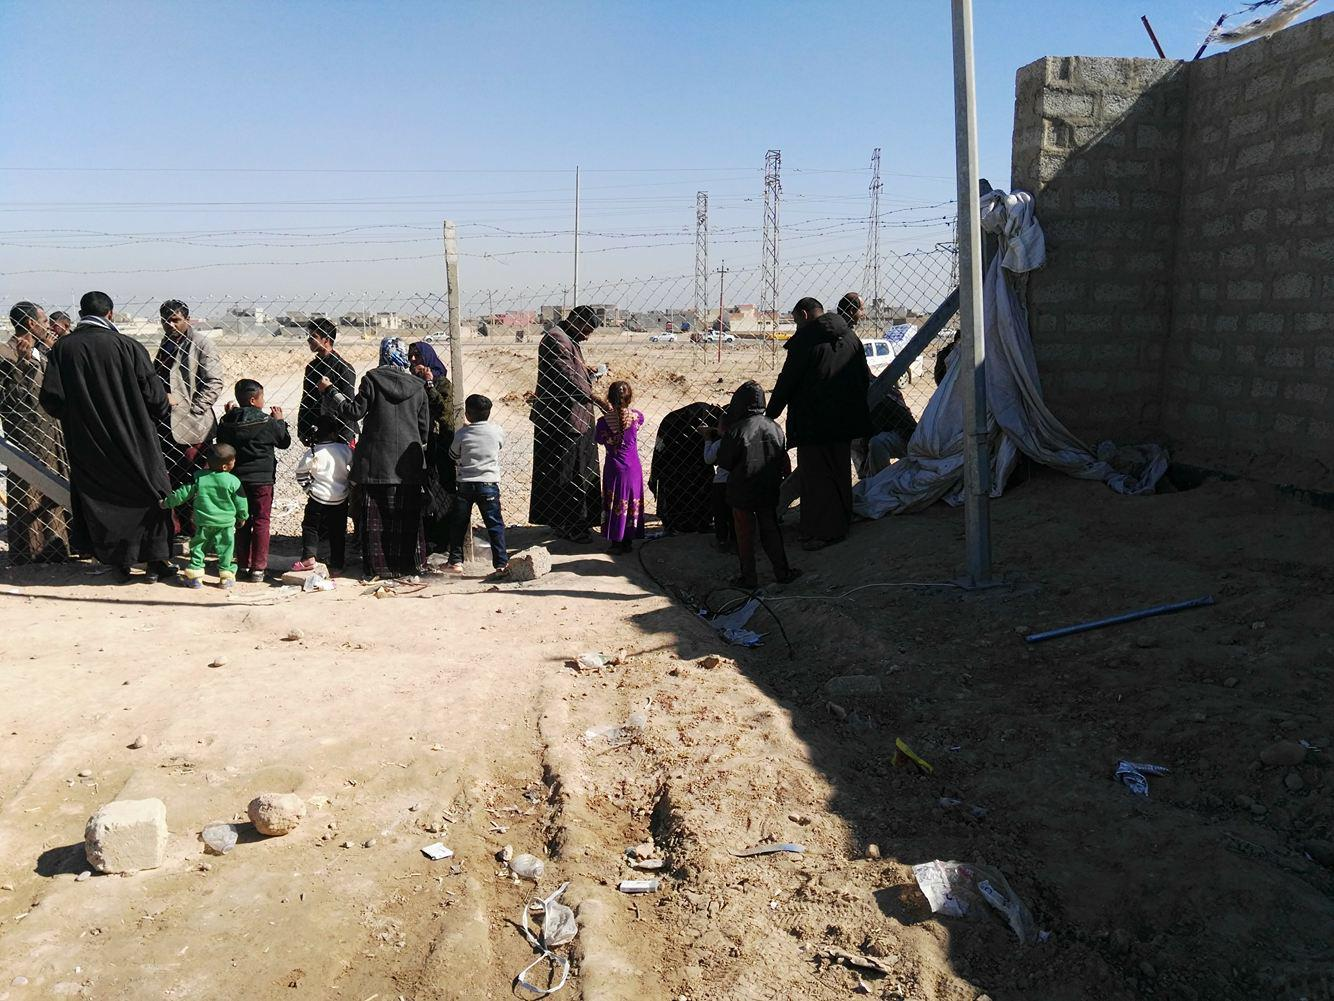 Residents of Shahama camp speak with relatives through the camp fence.